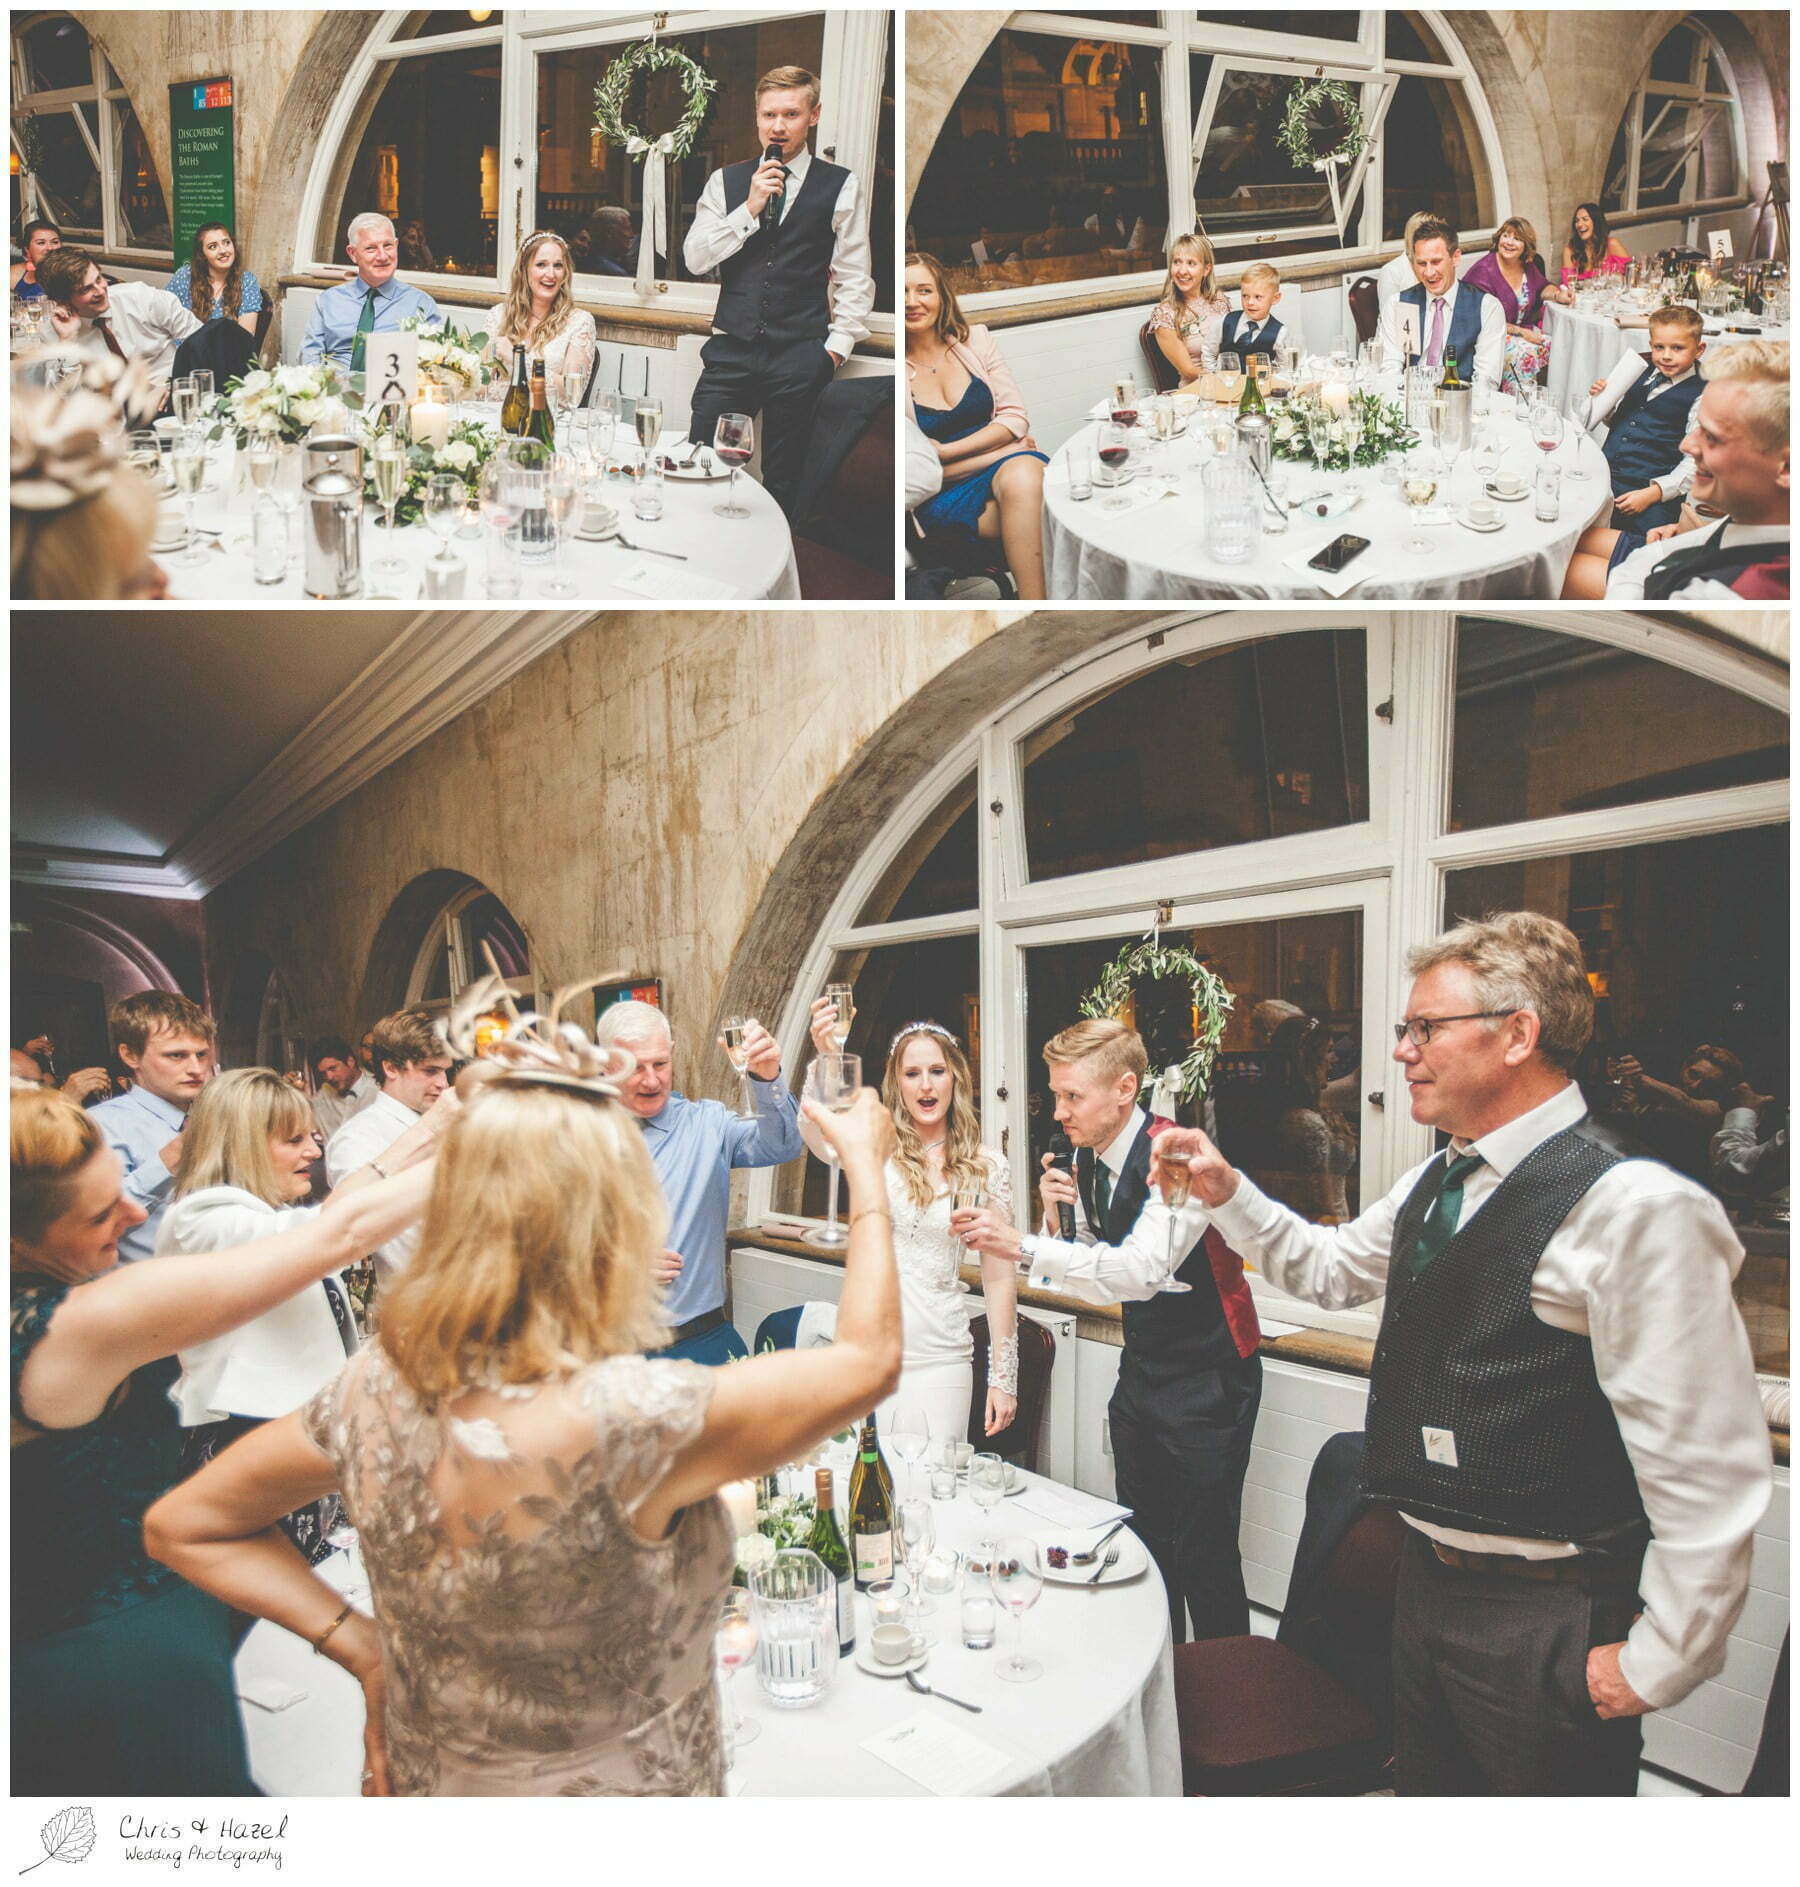 Groom wedding speech, Wedding speeches, wedding breakfast on the terrace at Roman Baths Pump Rooms, The Roman Baths Wedding Photography, Roman Baths Wedding Photographer, Wedding in Bath, Bath Wedding Day, documentary wedding photography, Chris and Hazel Wedding Photography Bath, Andy Frost Sian Upson